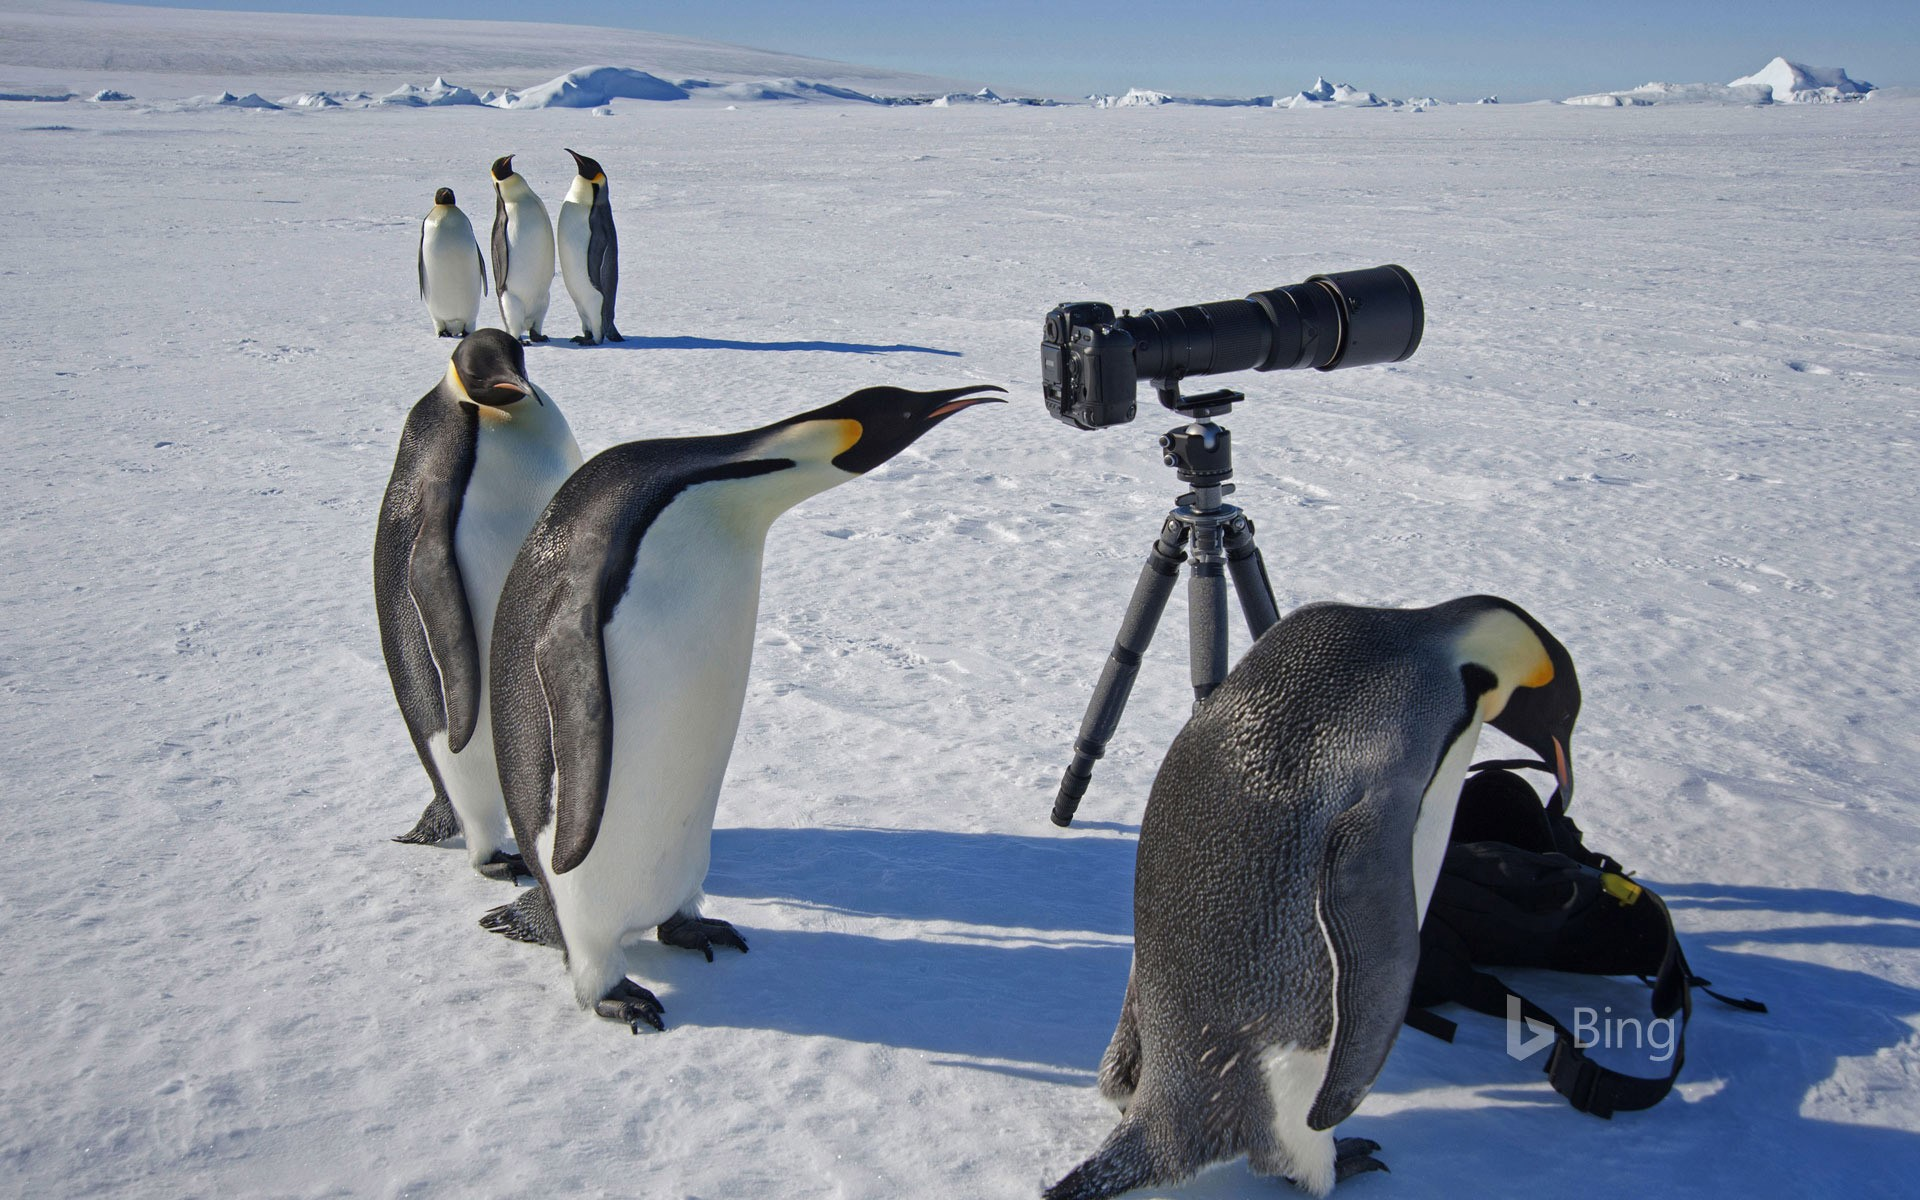 A group of curious emperor penguins in Antarctica